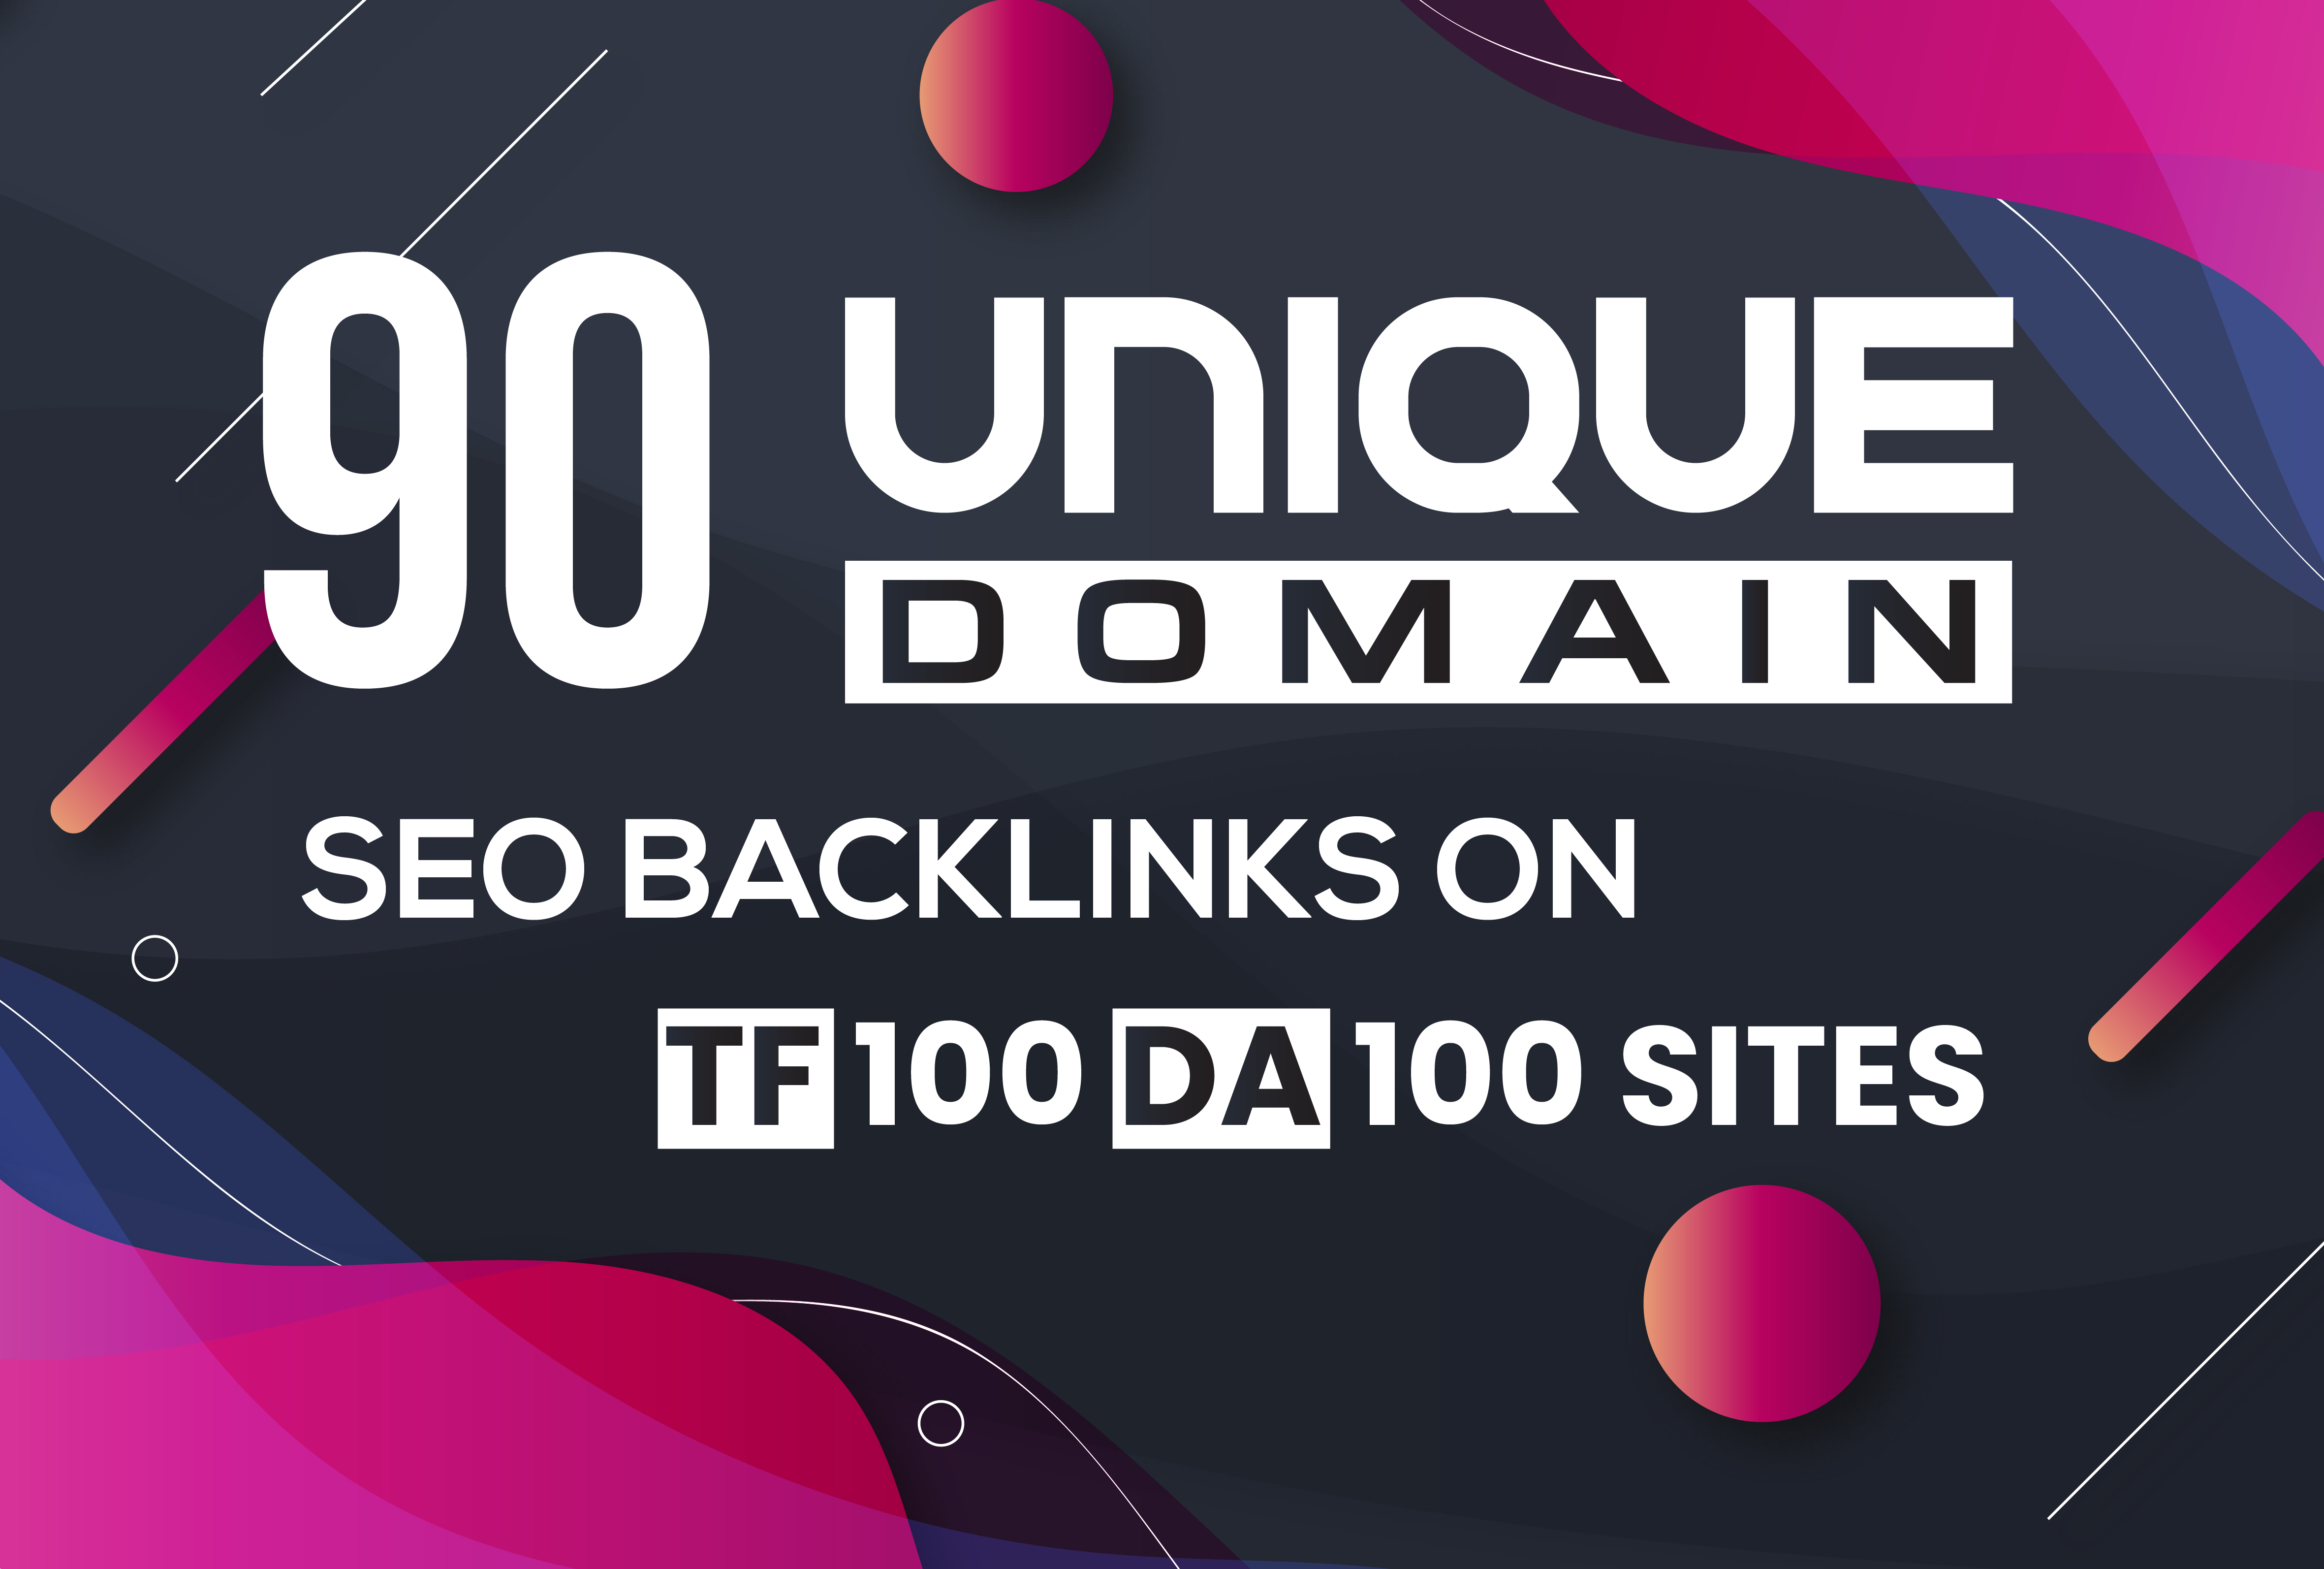 I Will Manually Build 90 UNIQUE DOMAIN SEO Backlinks On DA 100 TF 100 Sites